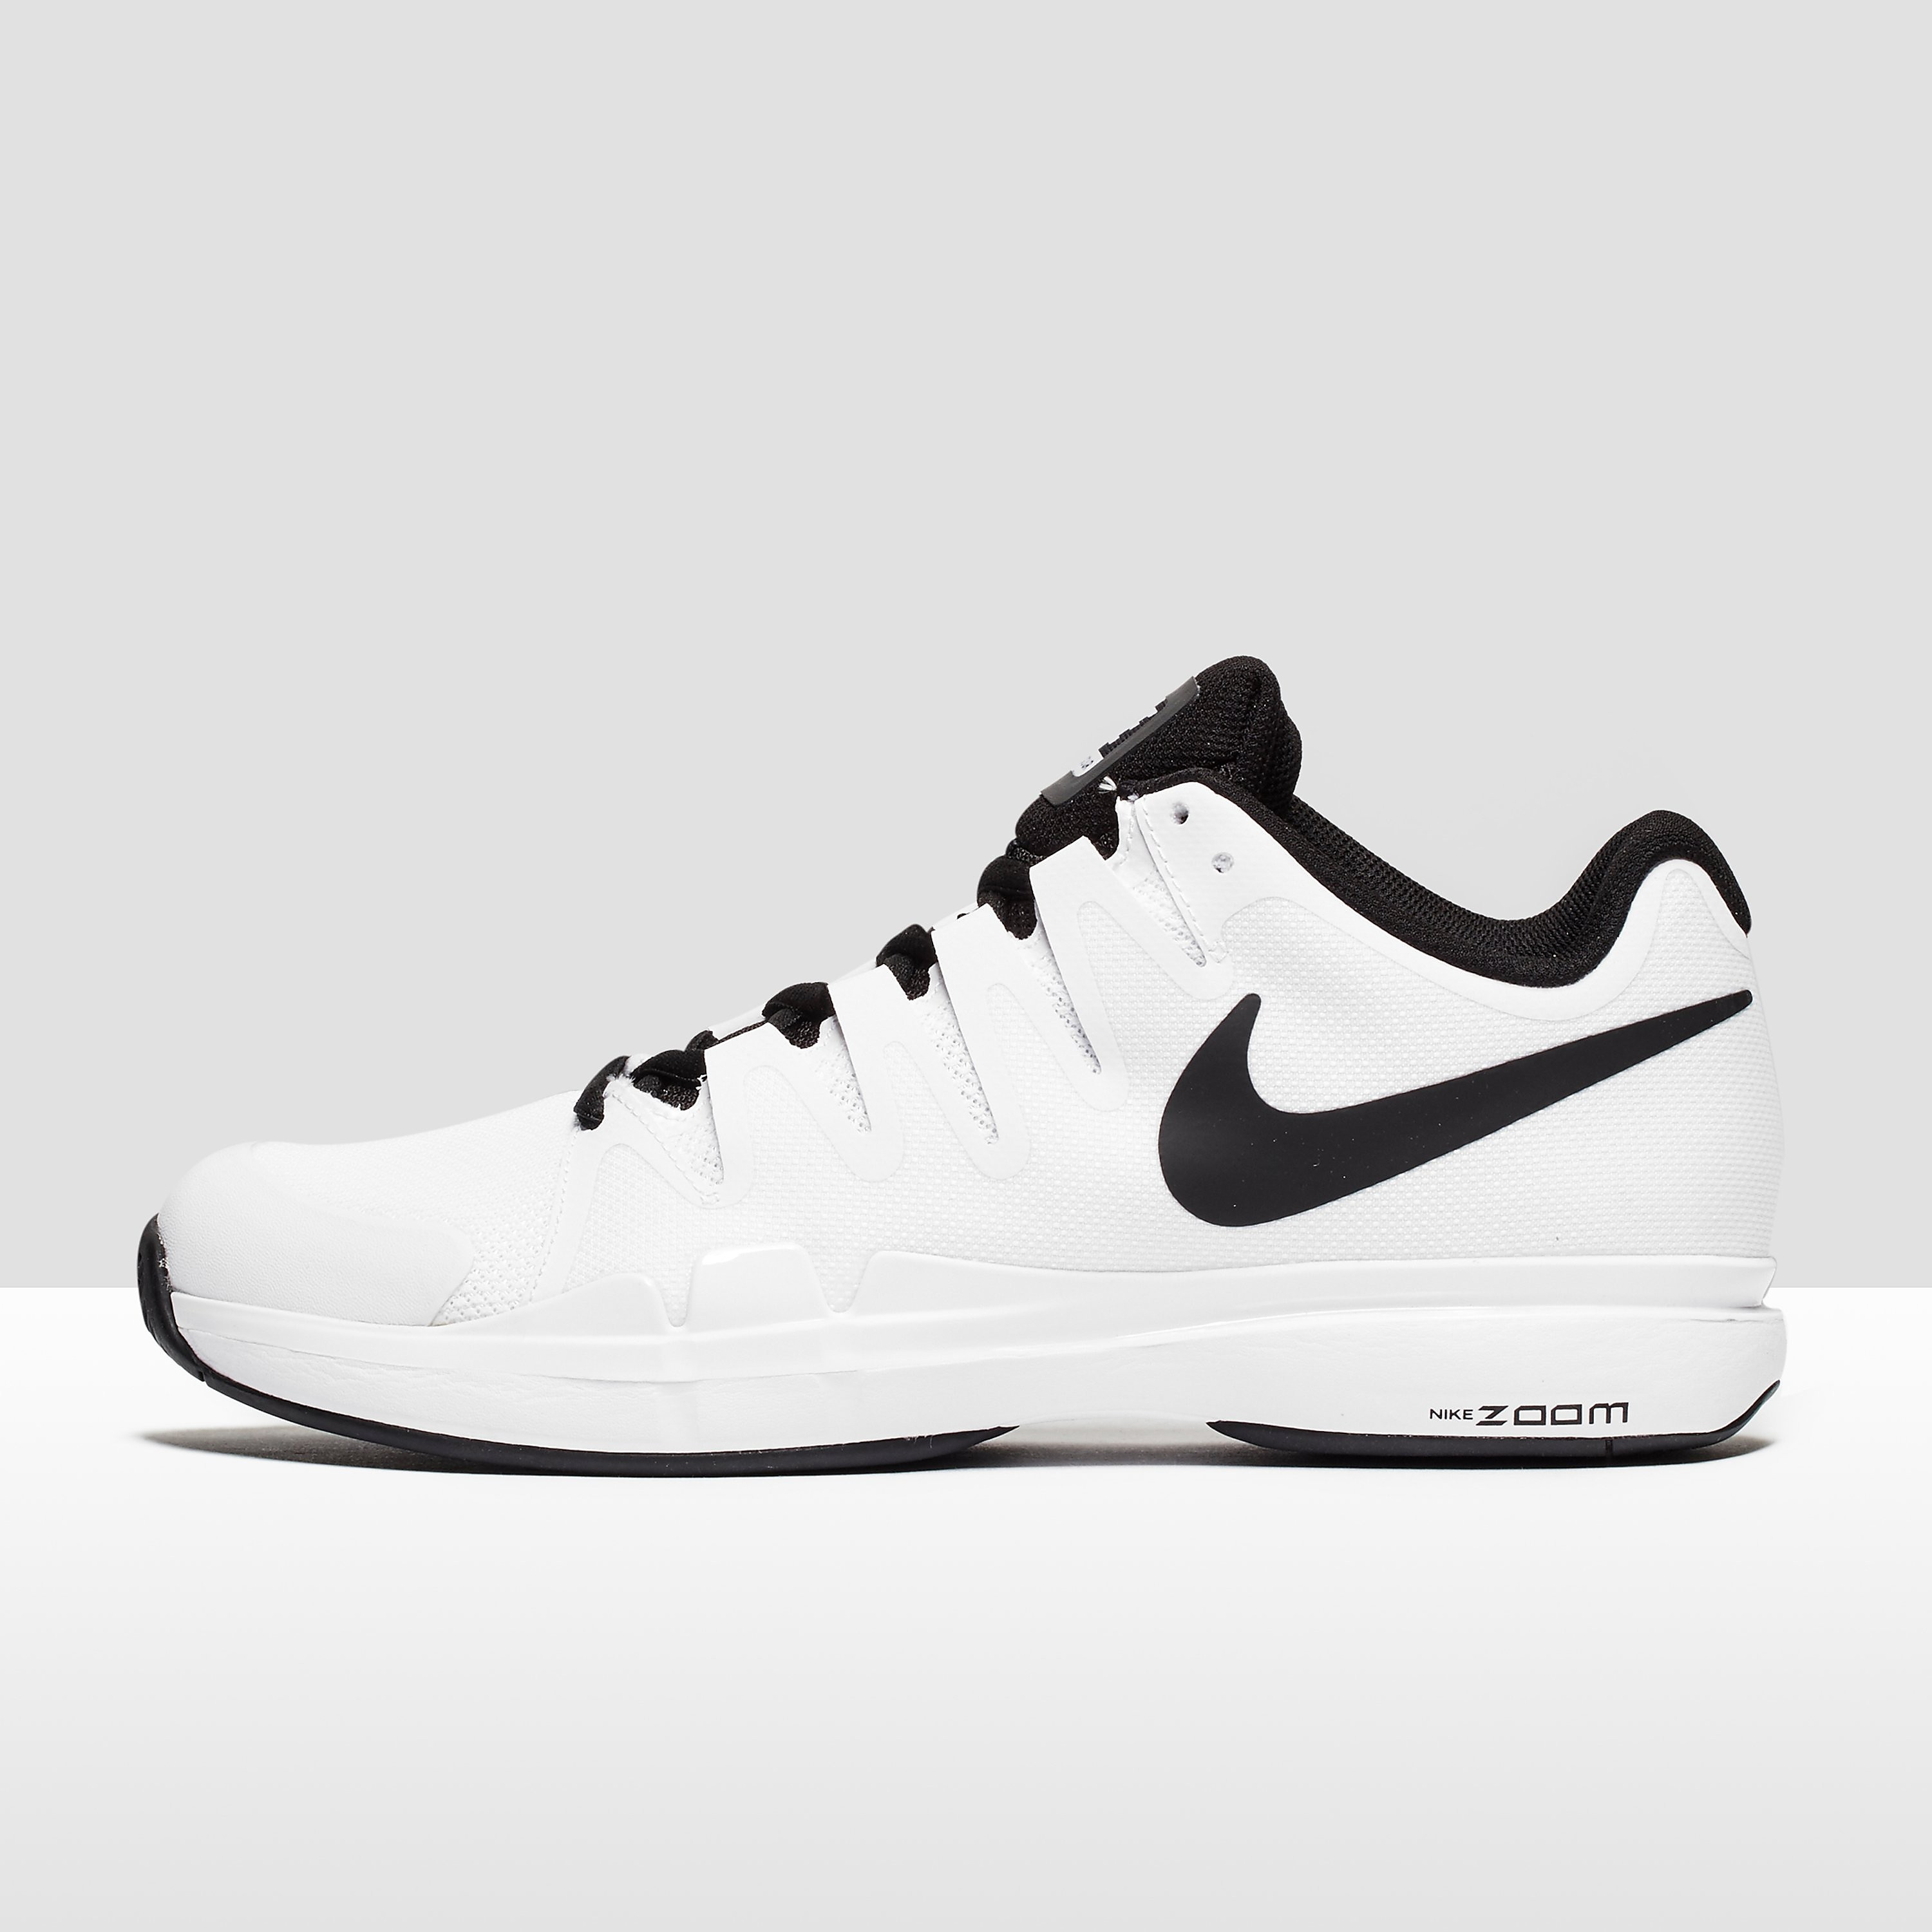 Nike Zoom Vapor 9.5 Tour Men's Tennis Shoes